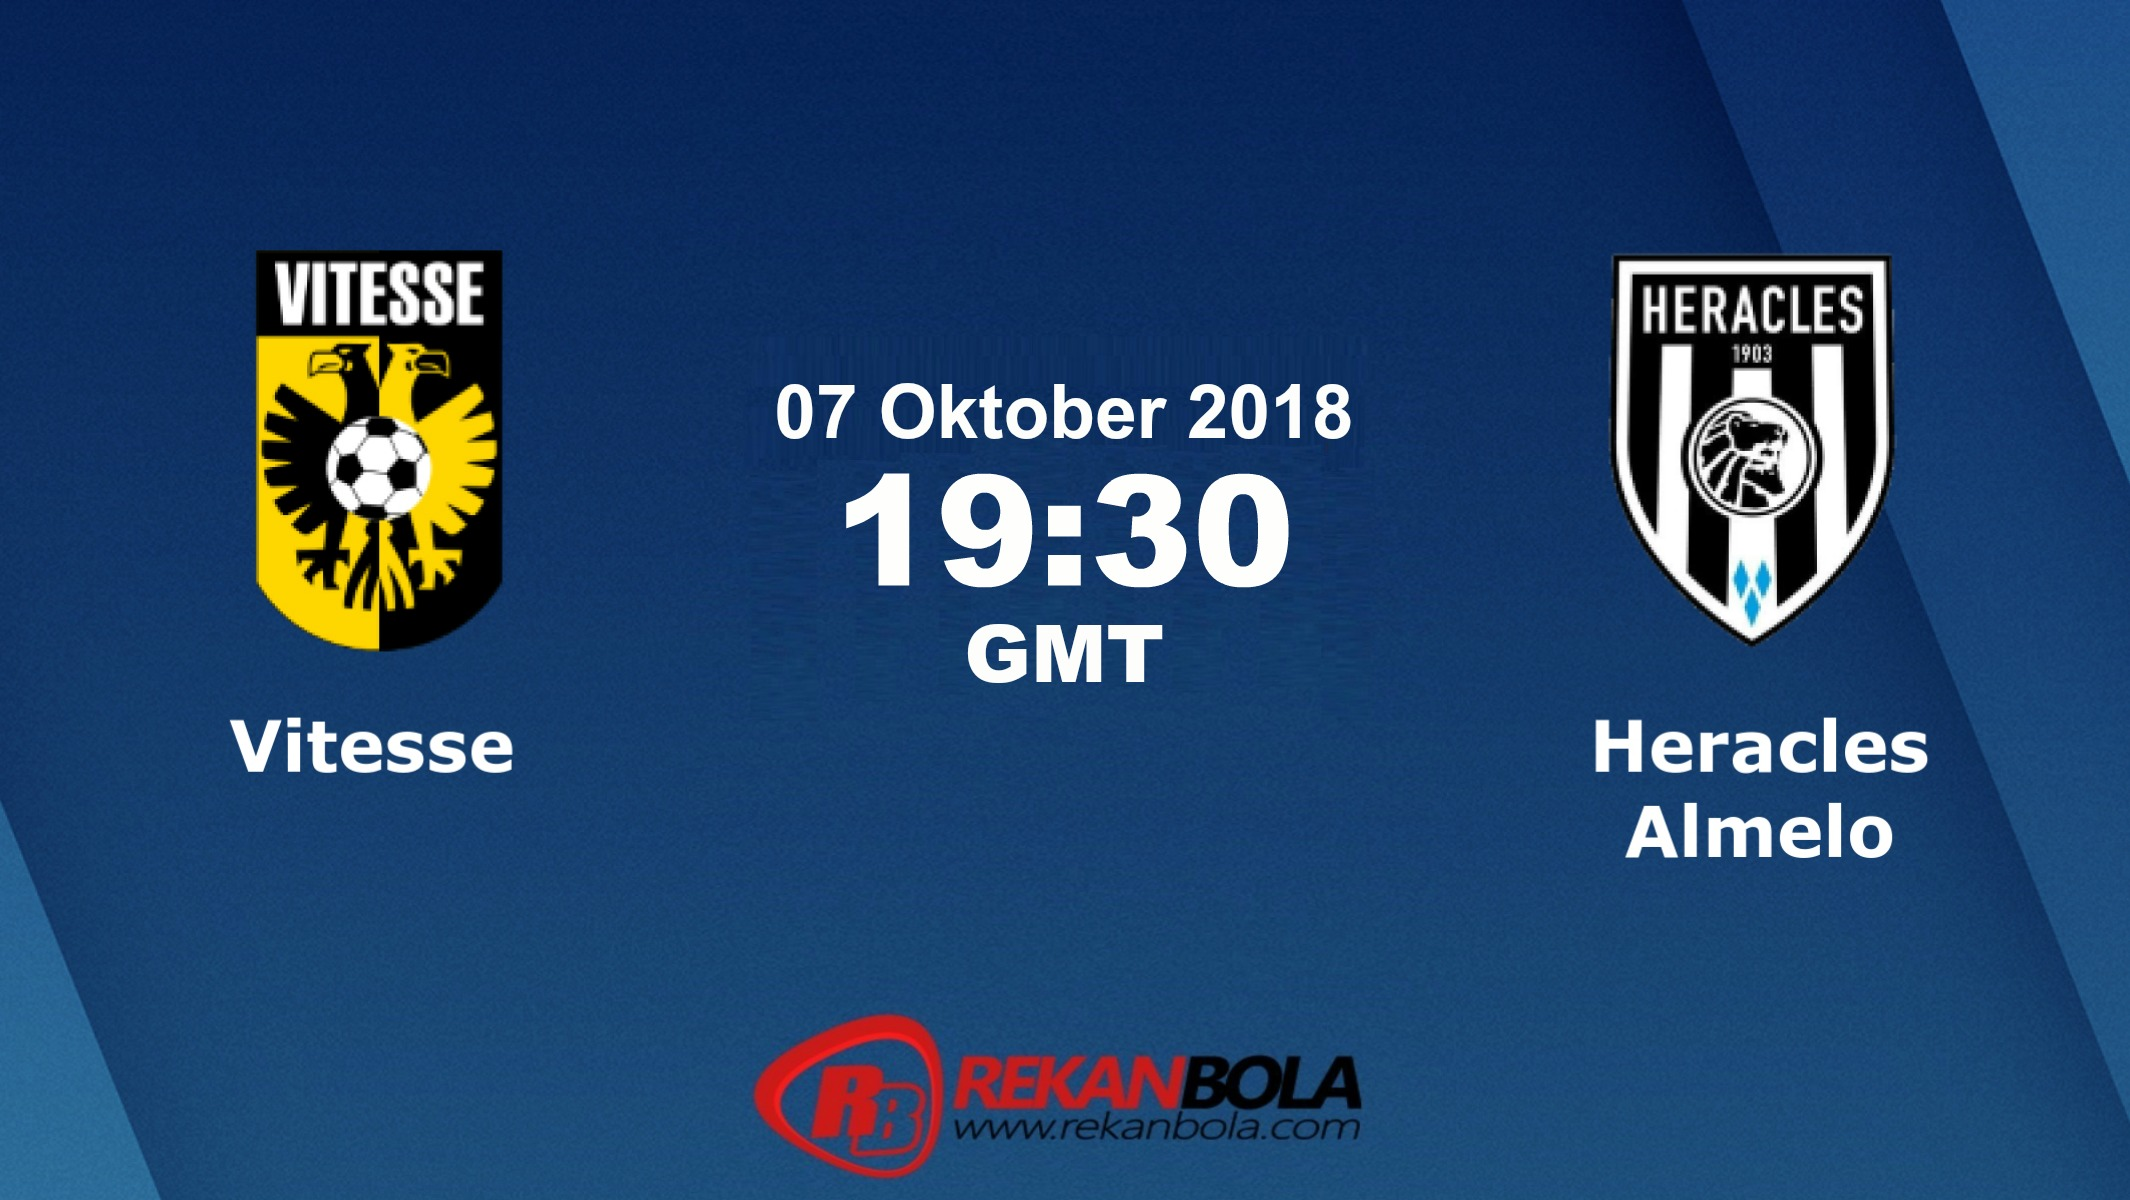 Nonton Siaran Live Streaming Vitesse Vs Heracles 07 Oktober 2018